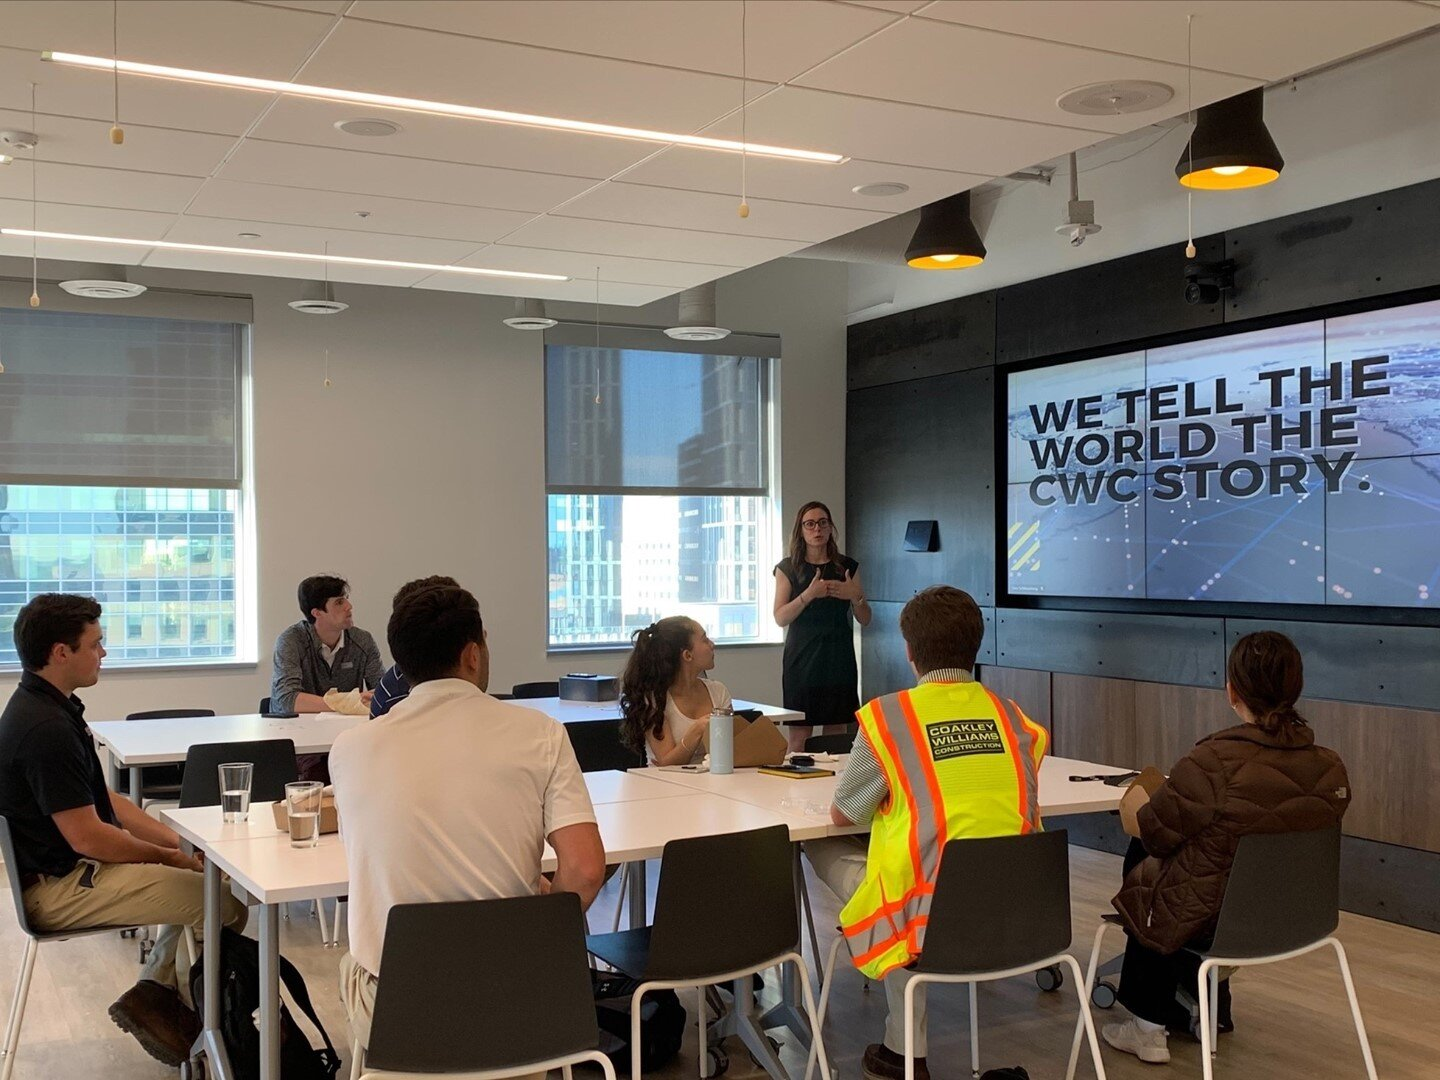 The CWC marketing team has an important role. We tell the world the CWC story.⠀ ⠀ Our Director of Marketing, Lisa Schlossberg, spoke to our #Summer2021Interns about the ins and outs of our internal and external marketing programs and how we use our website, social media, Spotify and video production to tell our story. #BuildingPeople #BuildWithUs